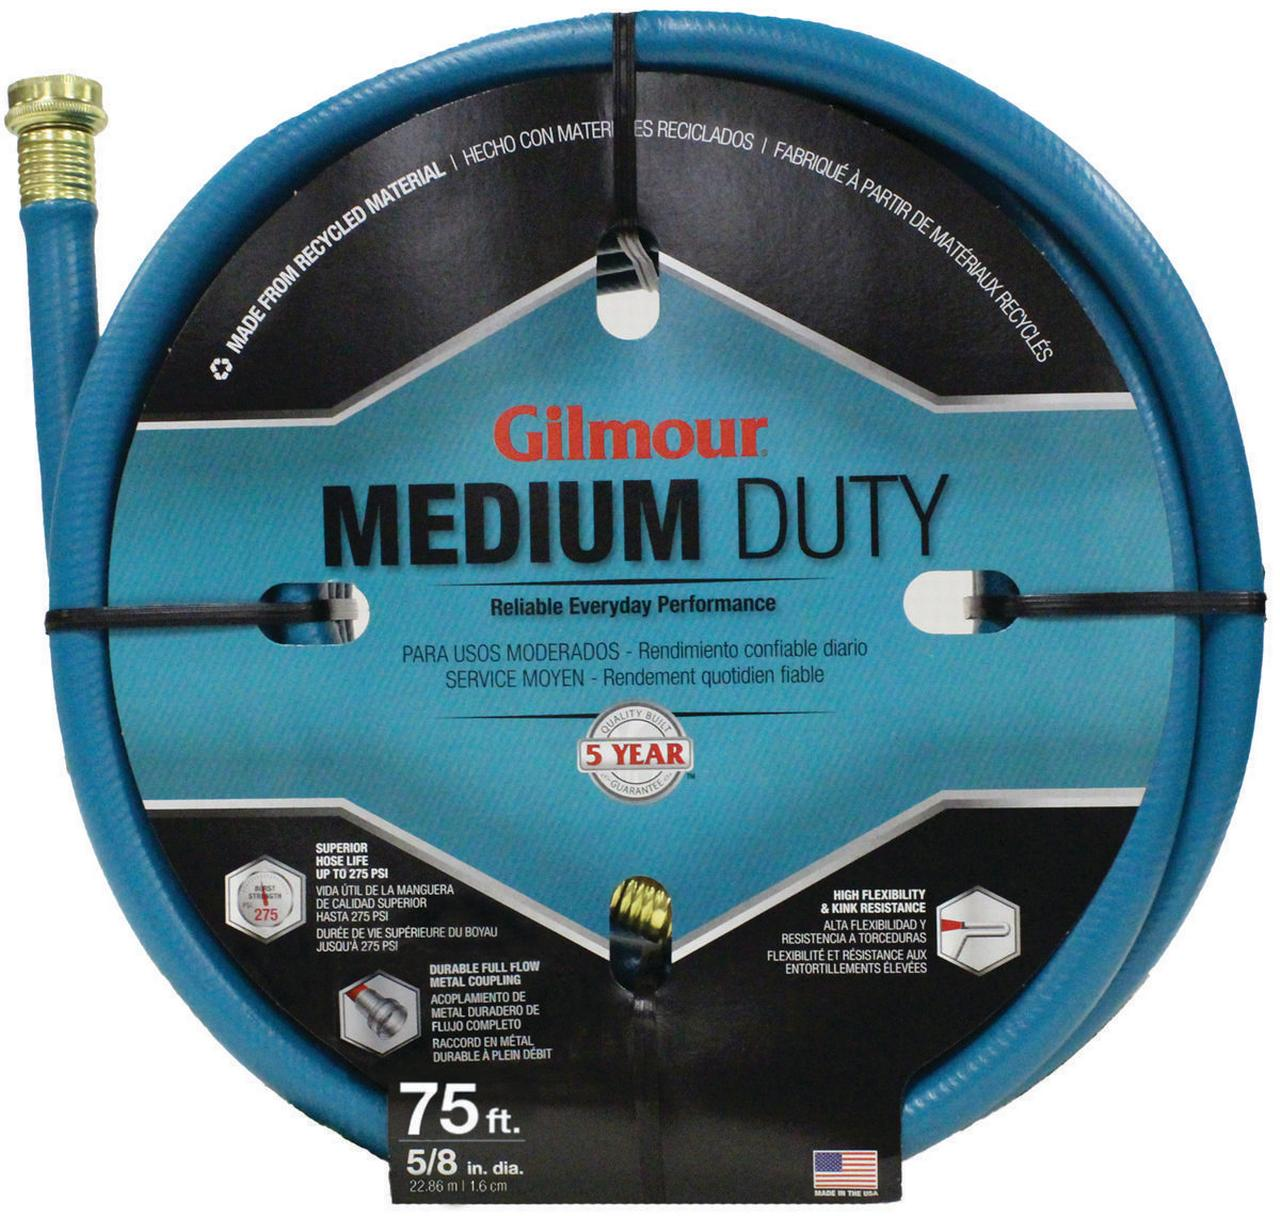 Gilmour 816751-1001 5/8 in X 75' 4 Ply Medium Duty Garden Hose